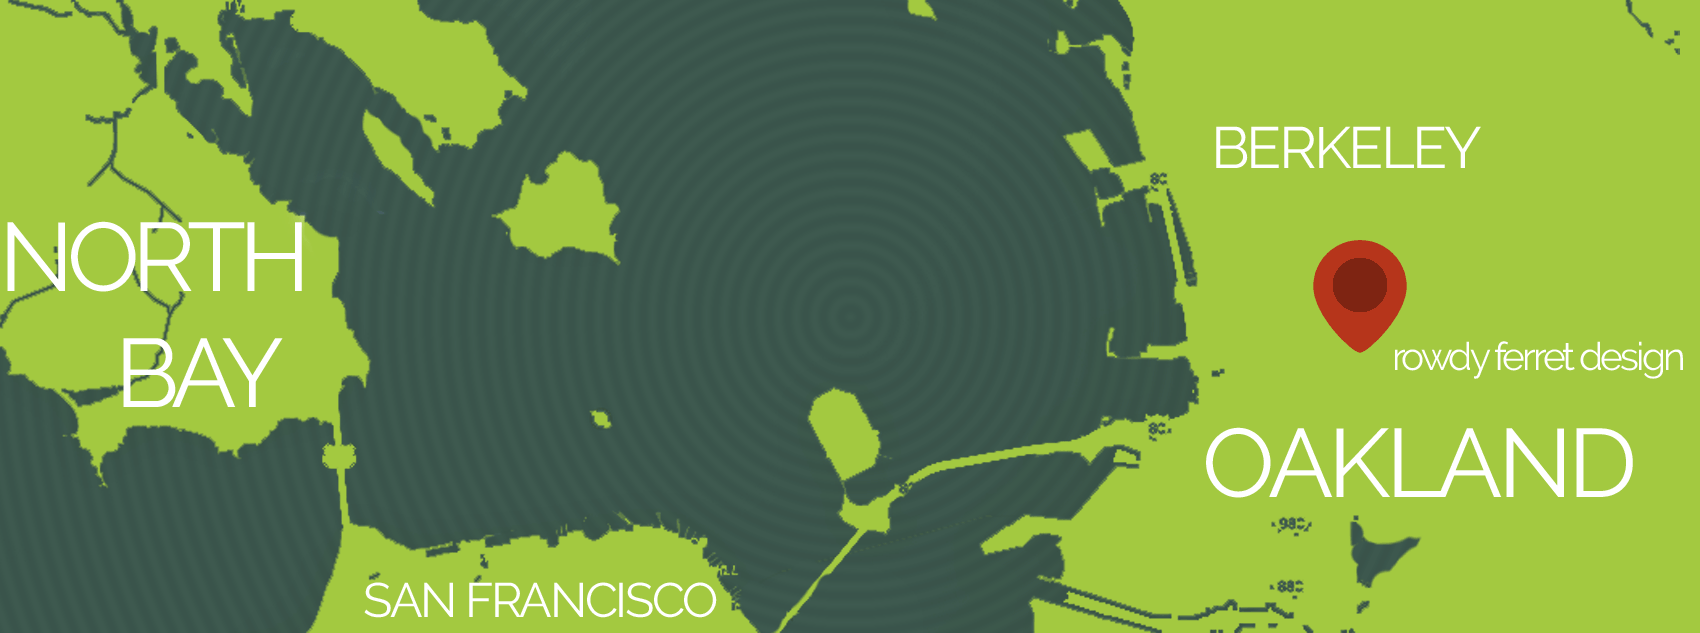 map of the entire bay area, inclduing marin and the north bay, san francisco, oakland, and berkeley (and of course the location of rowdy ferret design HQ)